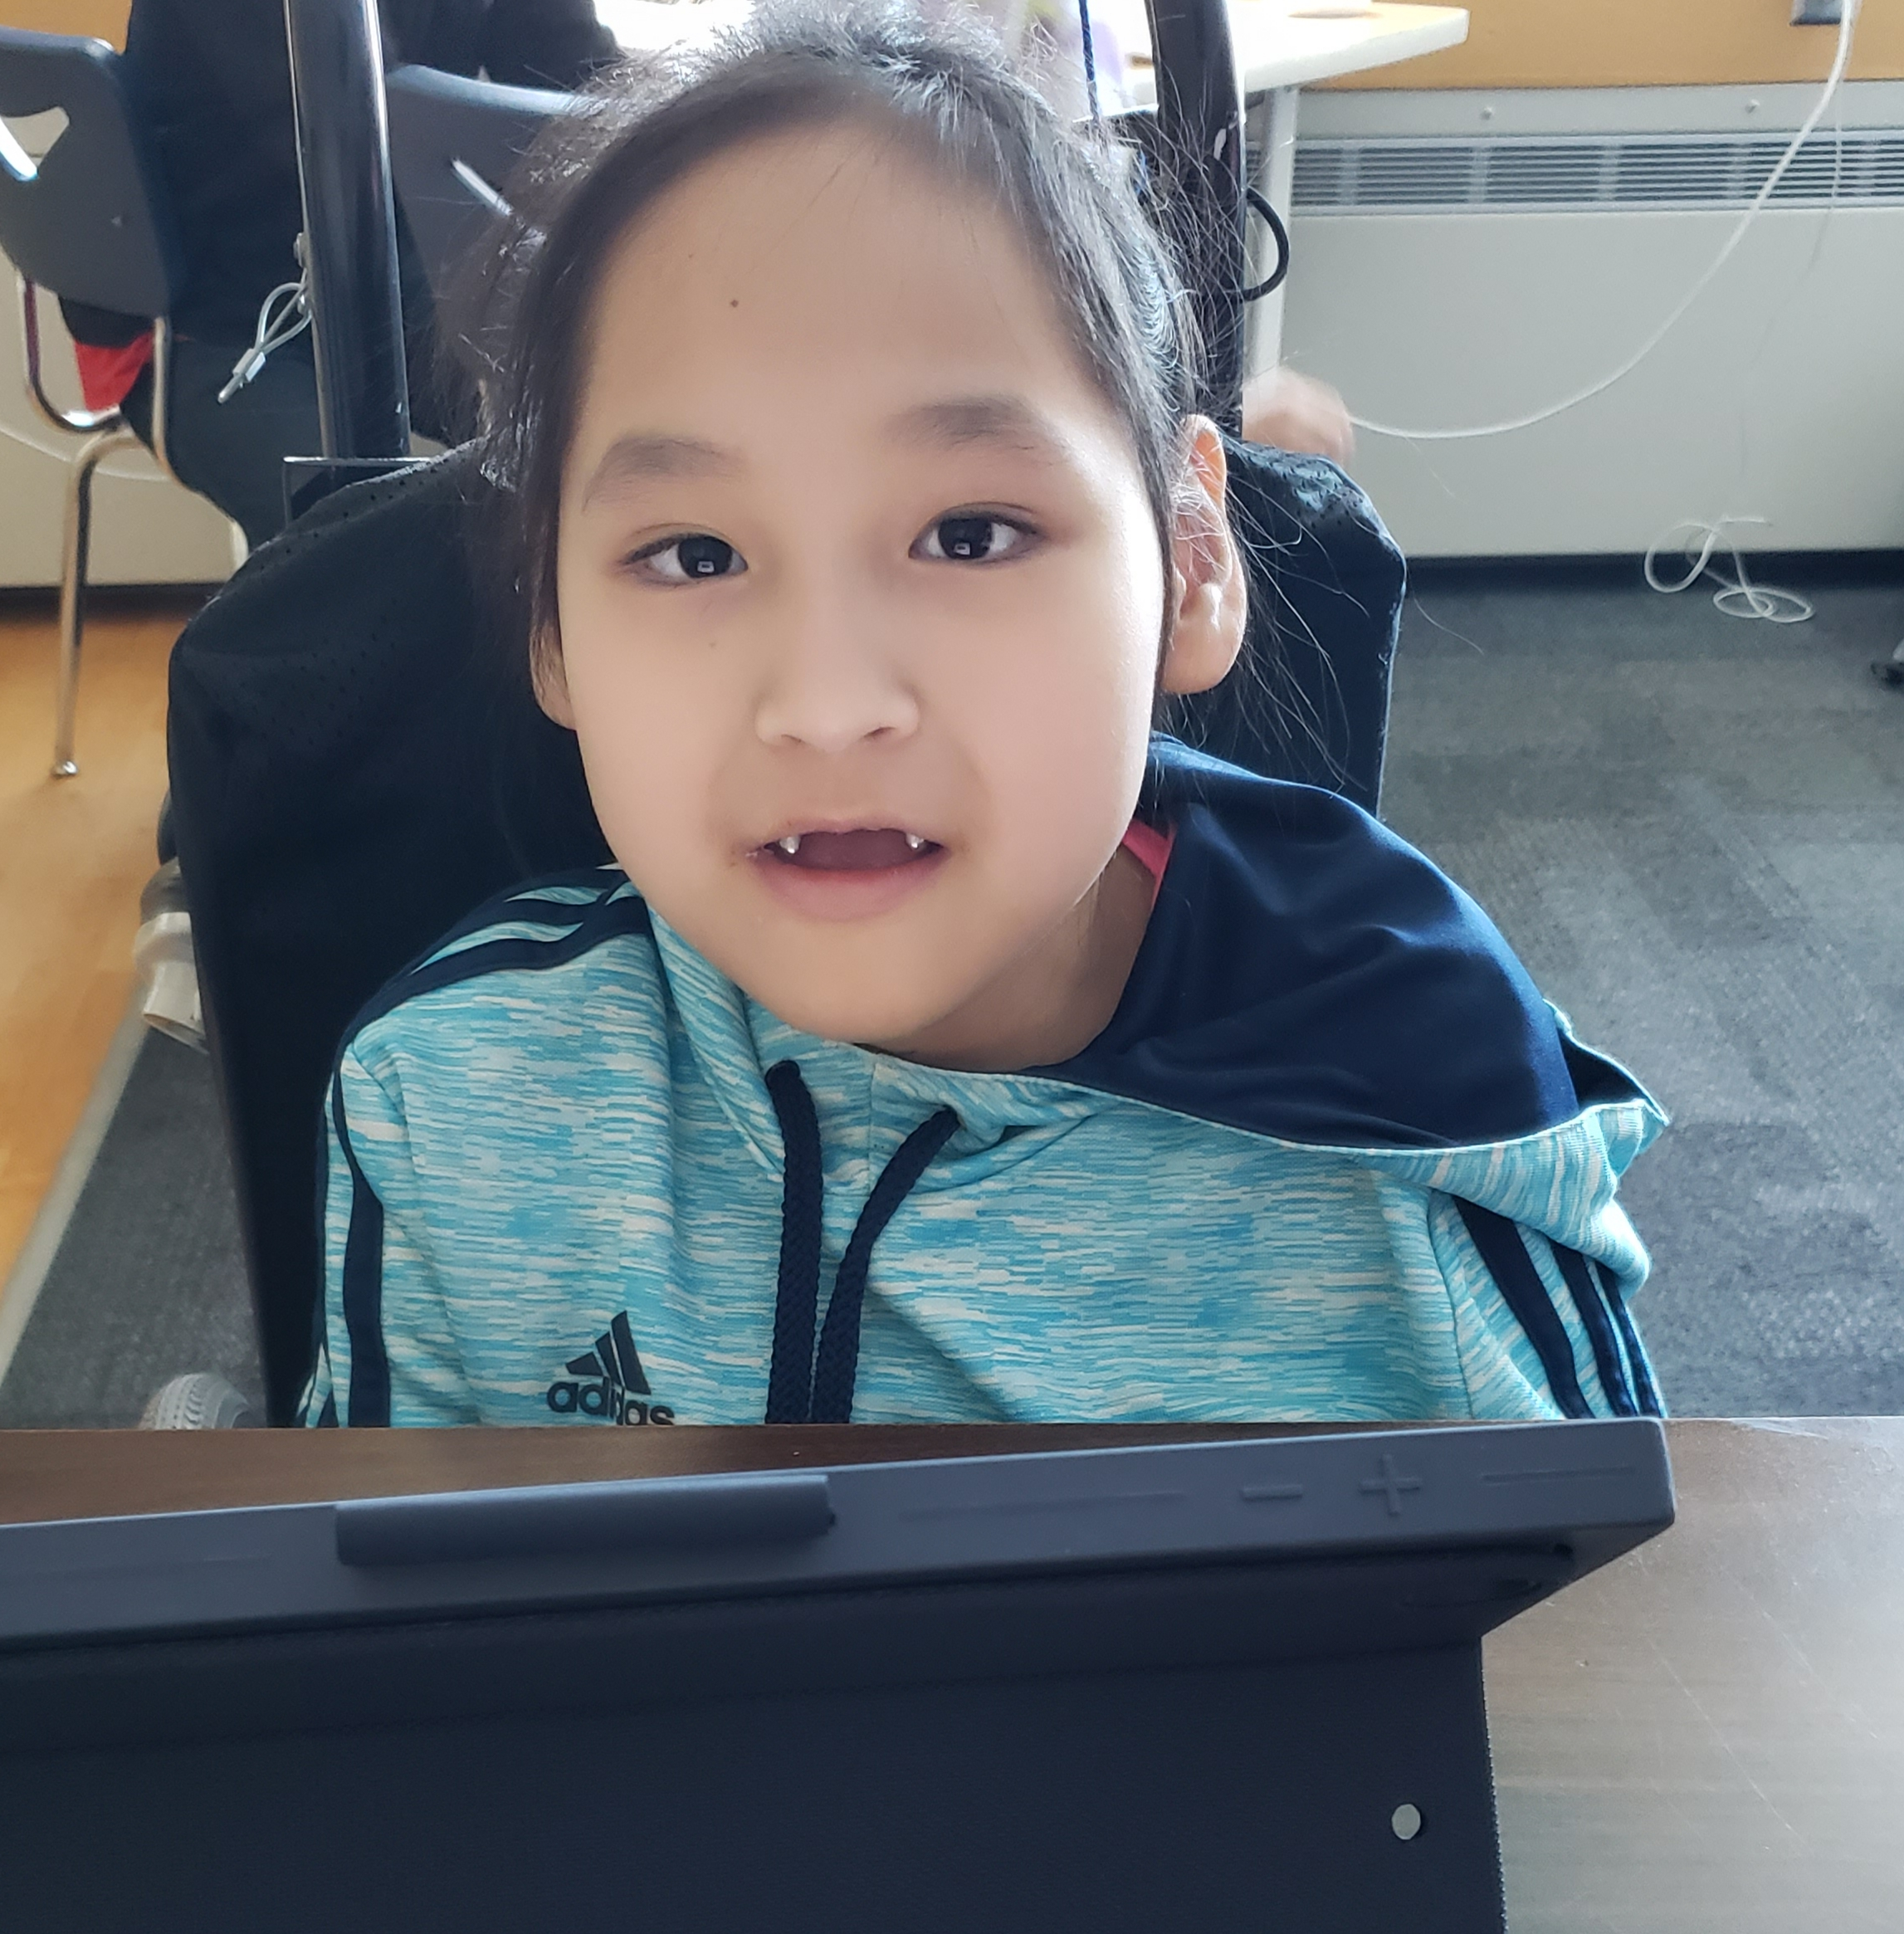 A young girl in a wheelchair looks up from the iPad as she is working.